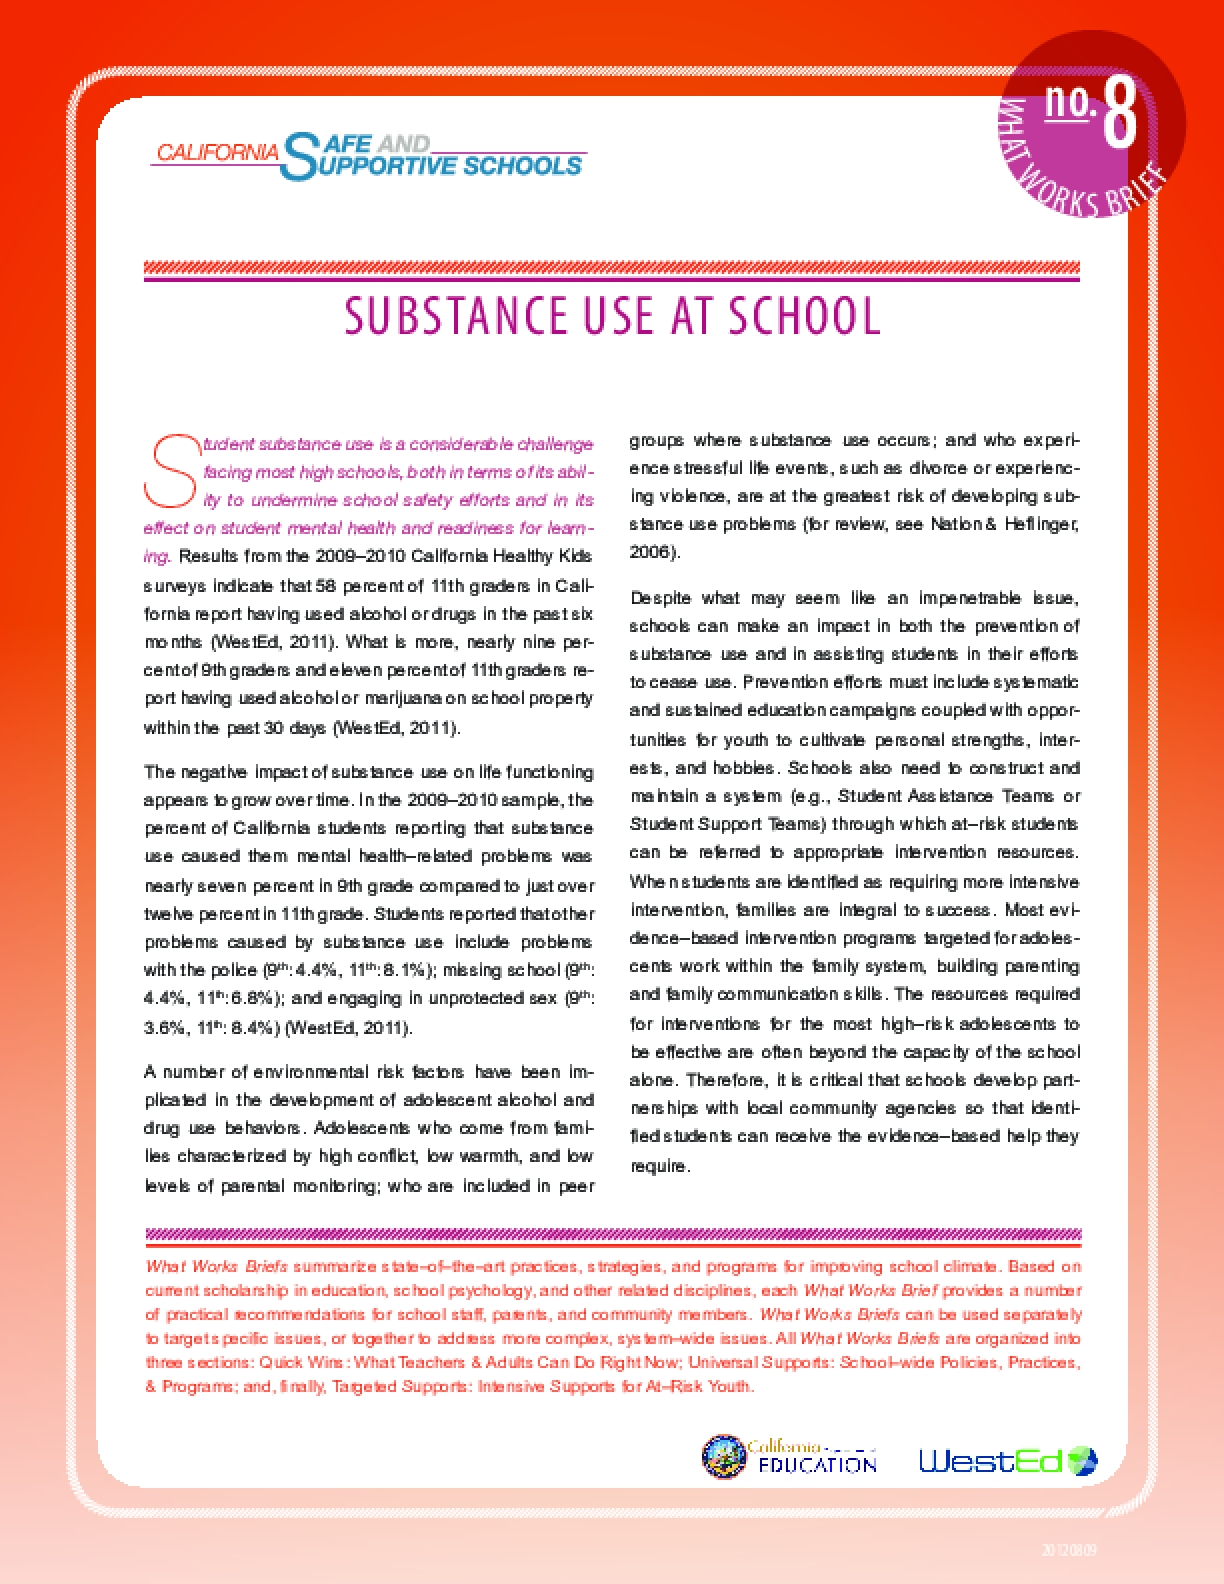 What Works Brief #8: Substance Use at School